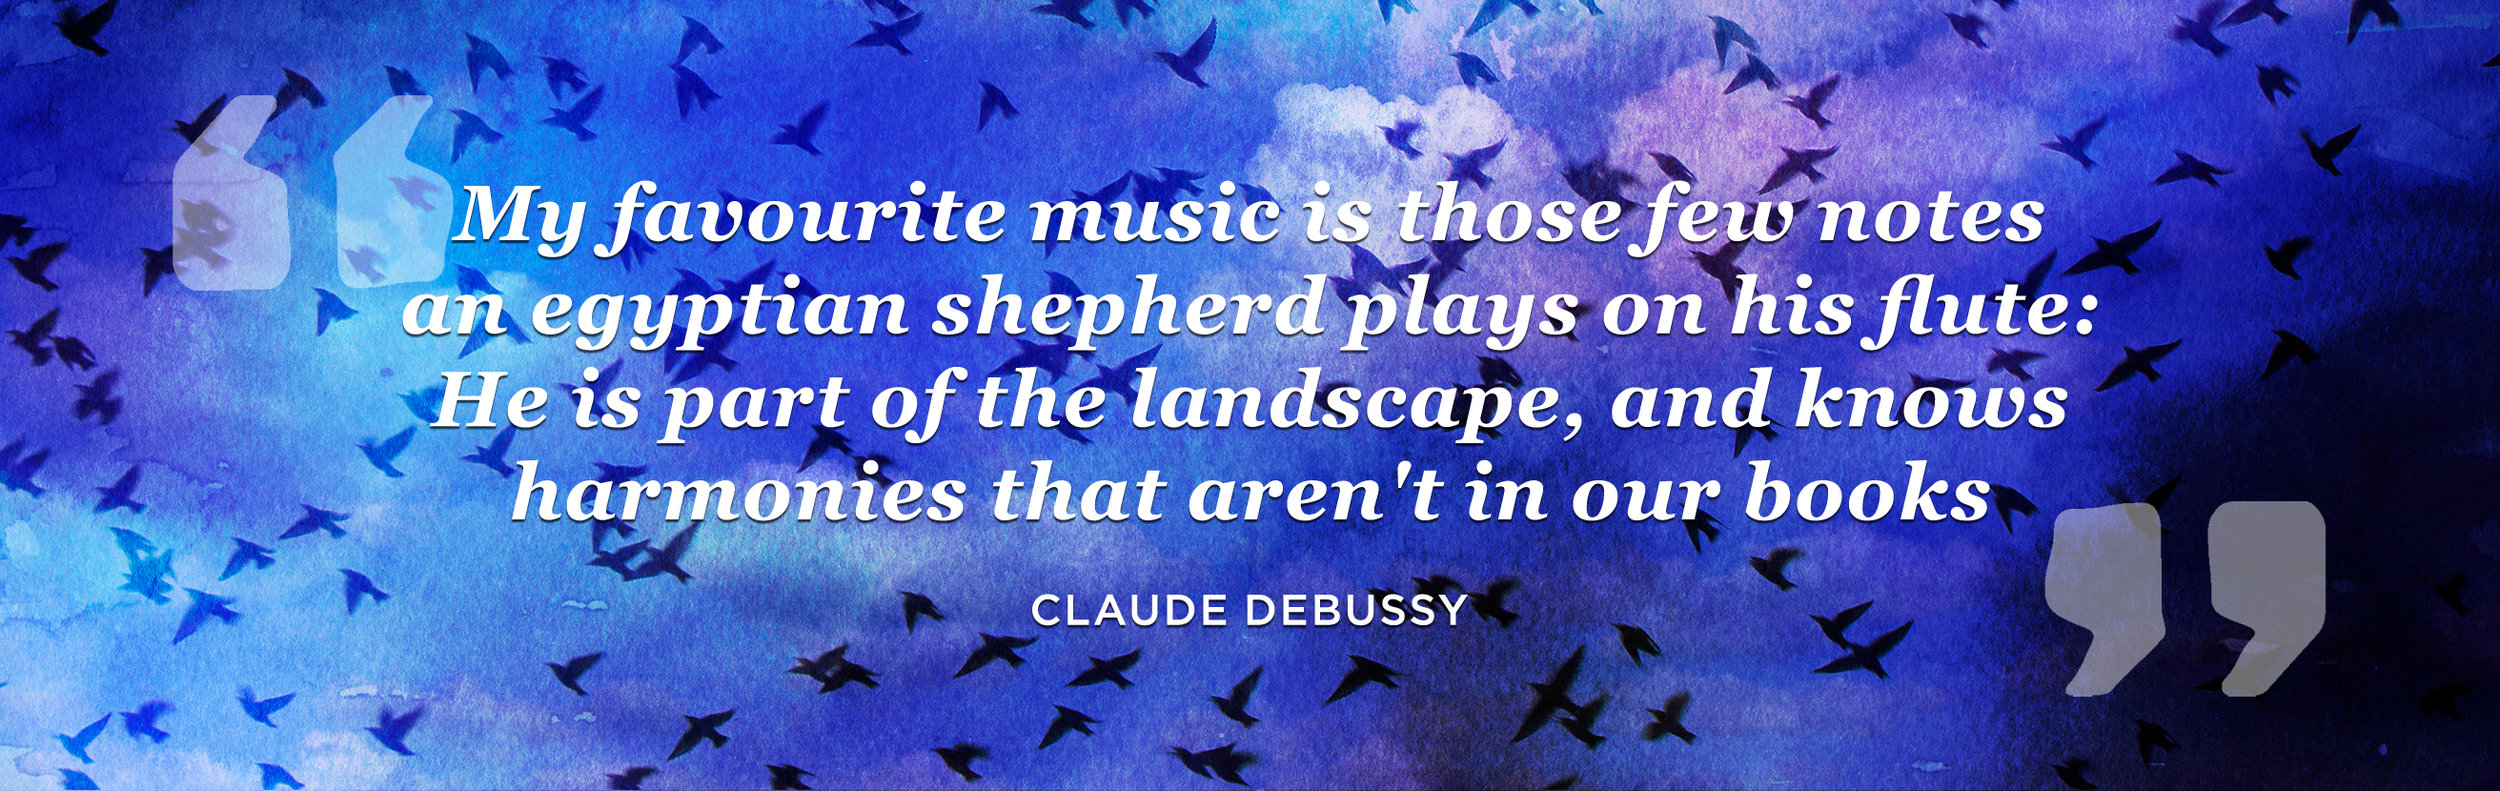 Claude Debussy quote